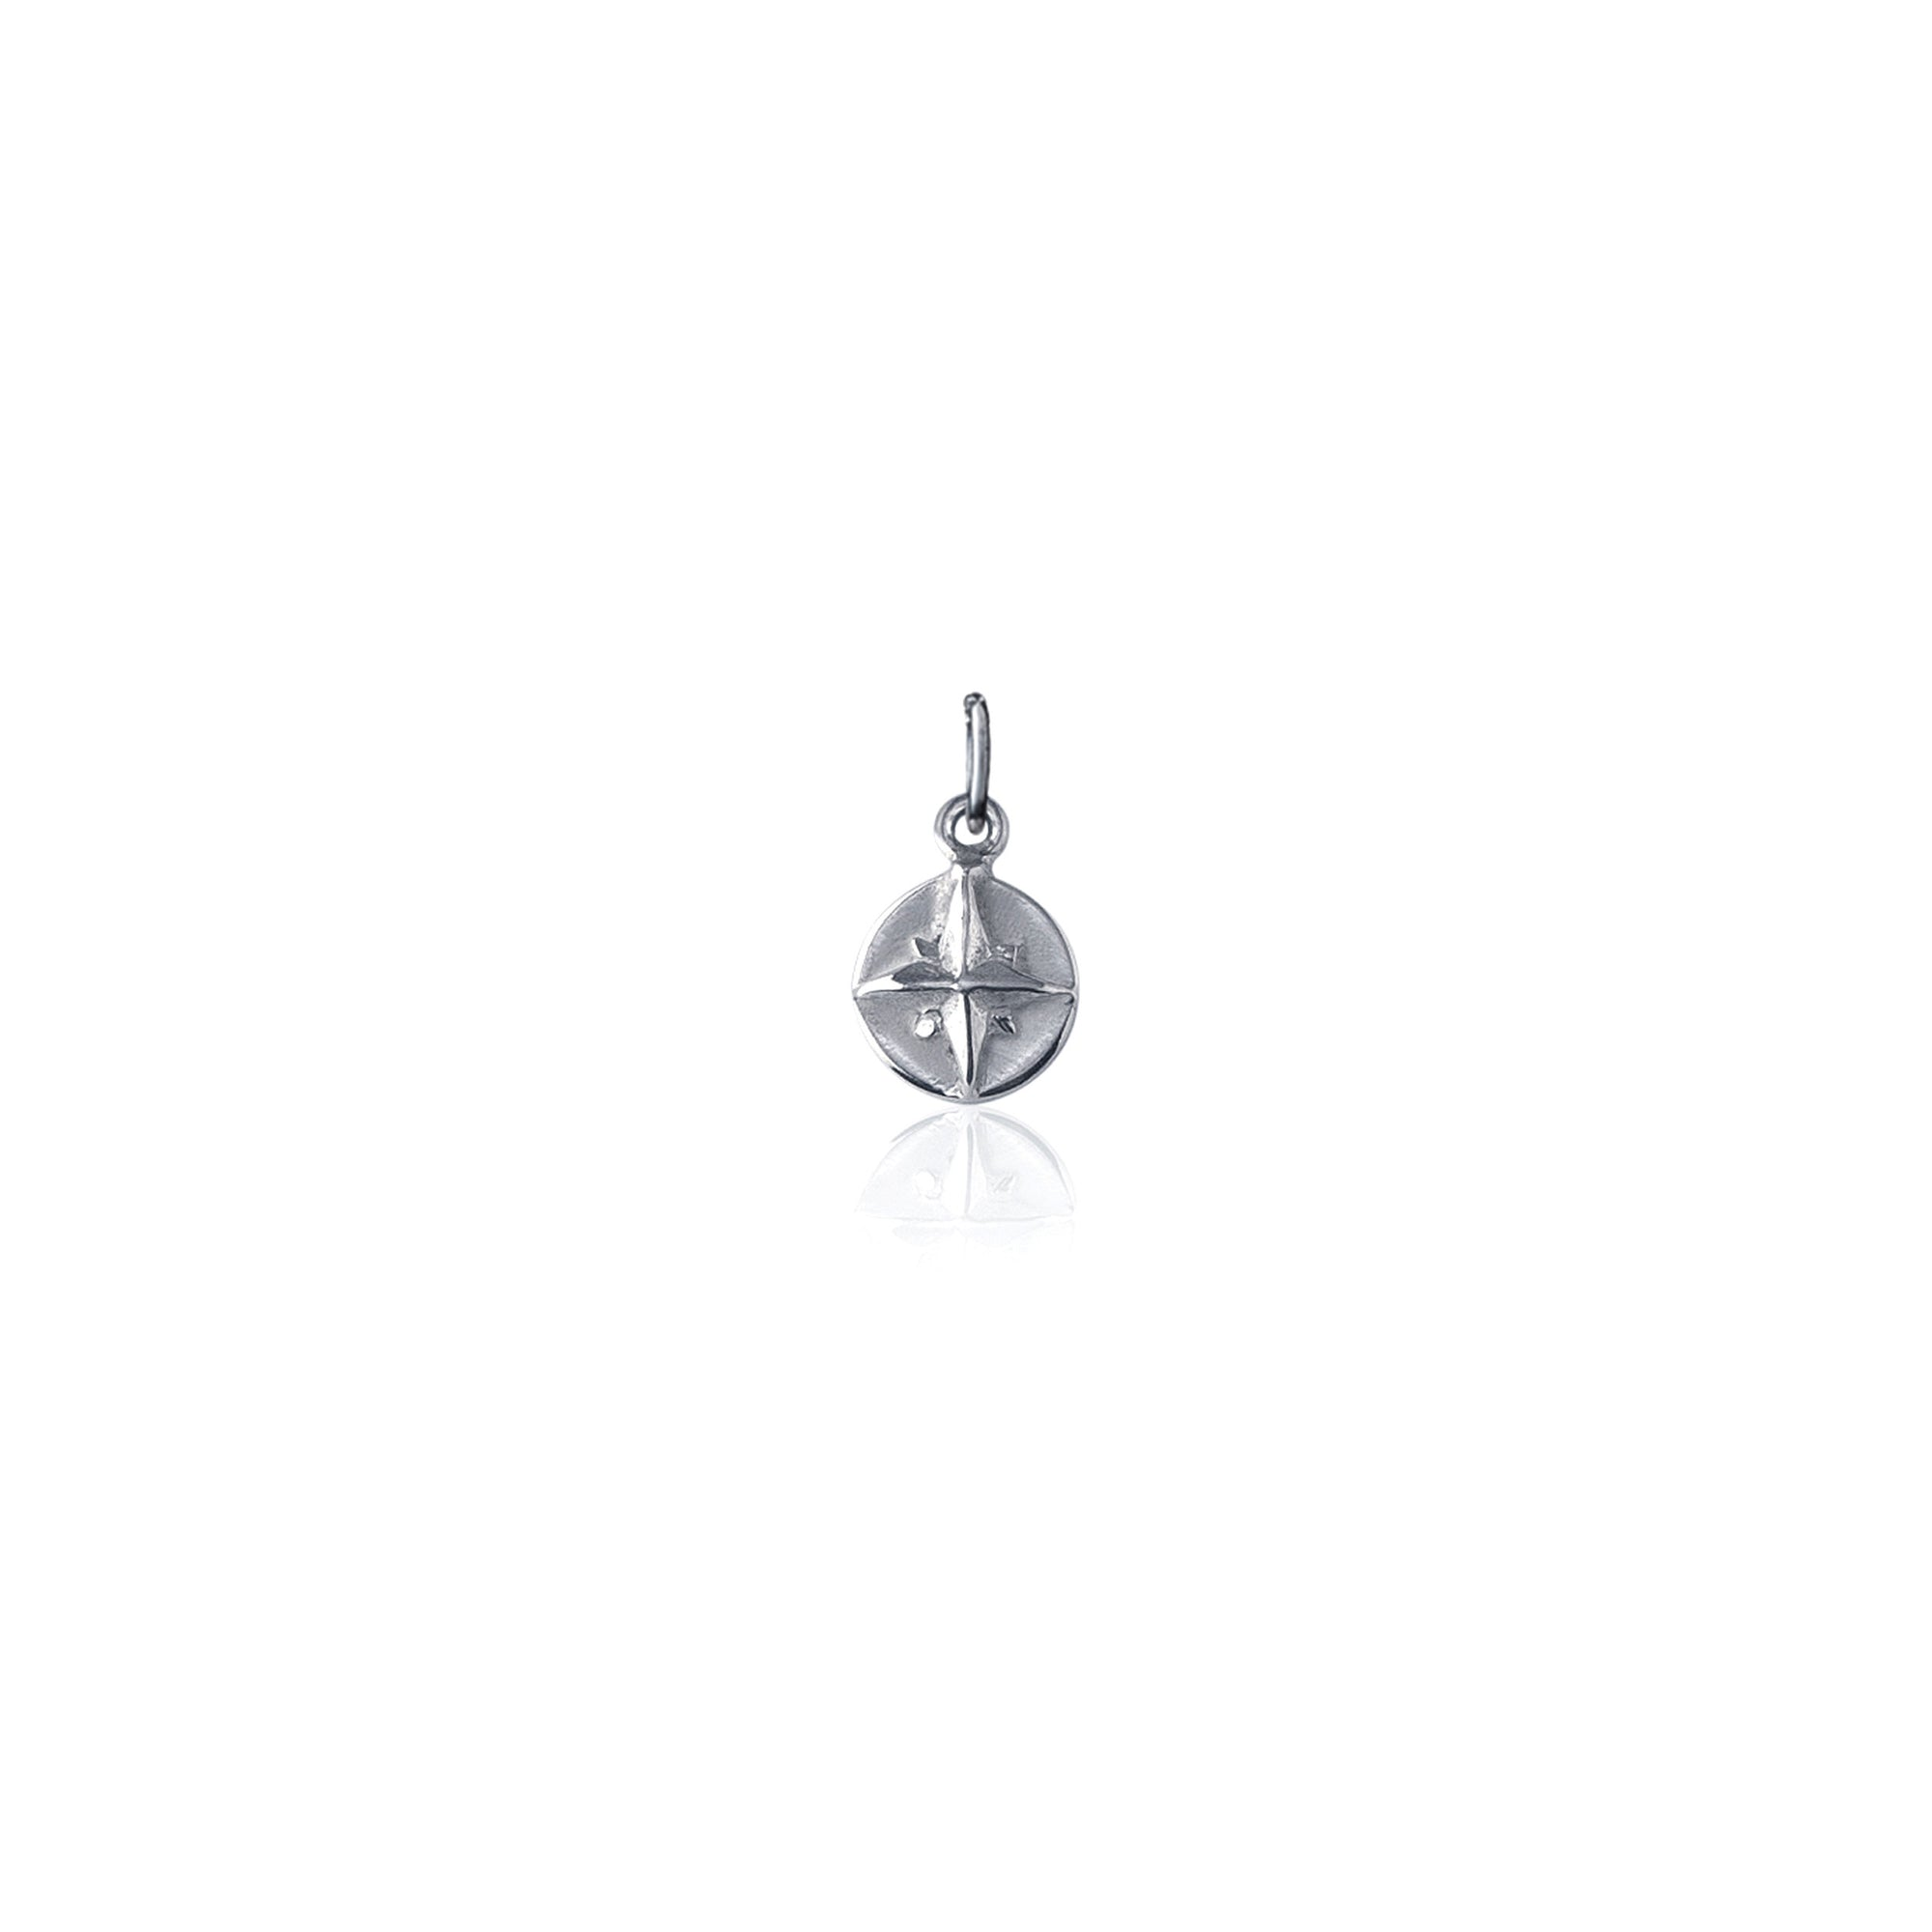 Born to Roam Compass Charm - Silver